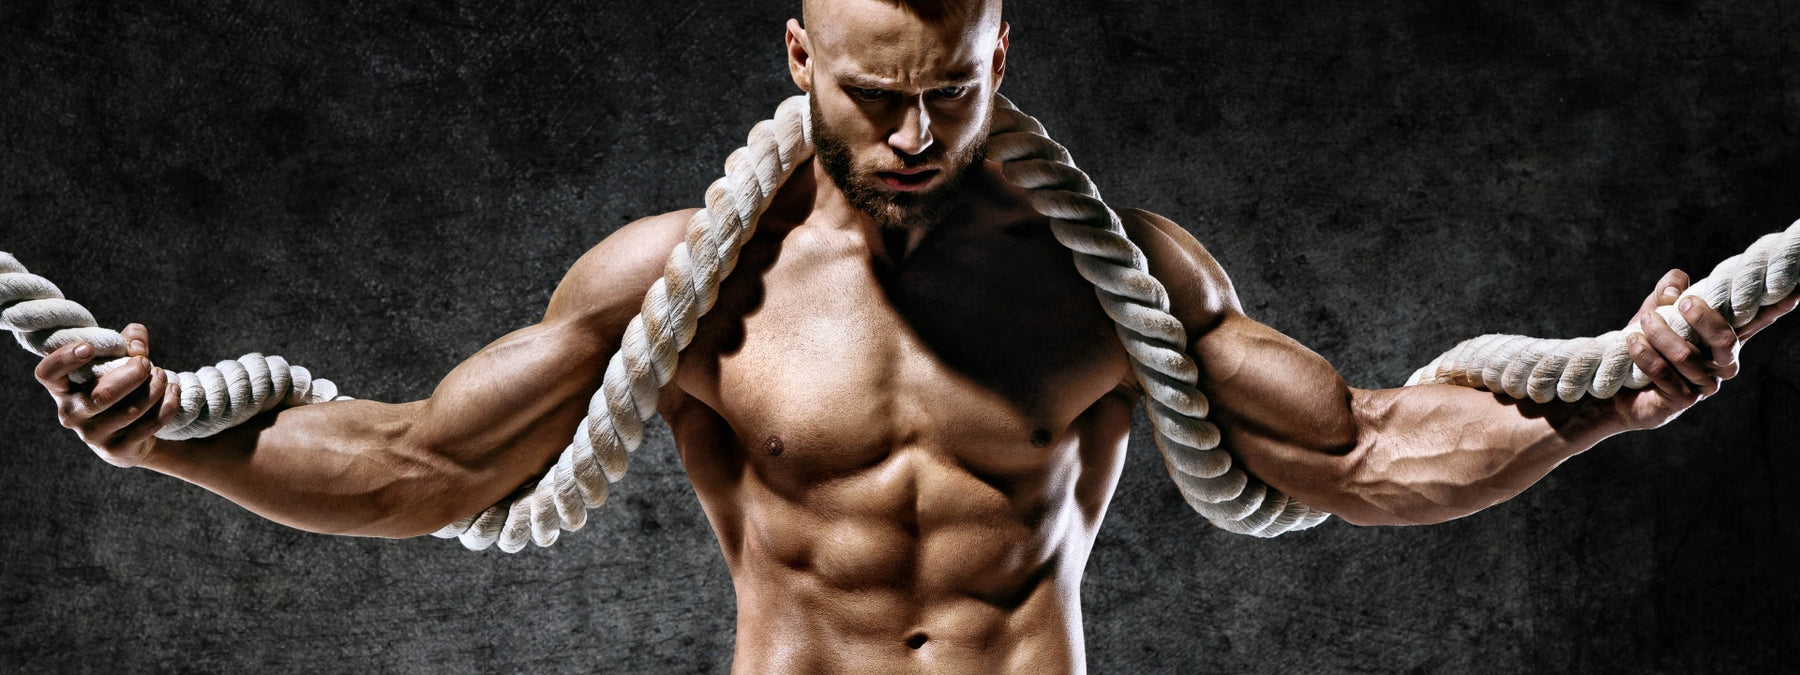 8 Potent Rope Exercises For More Muscle Mass